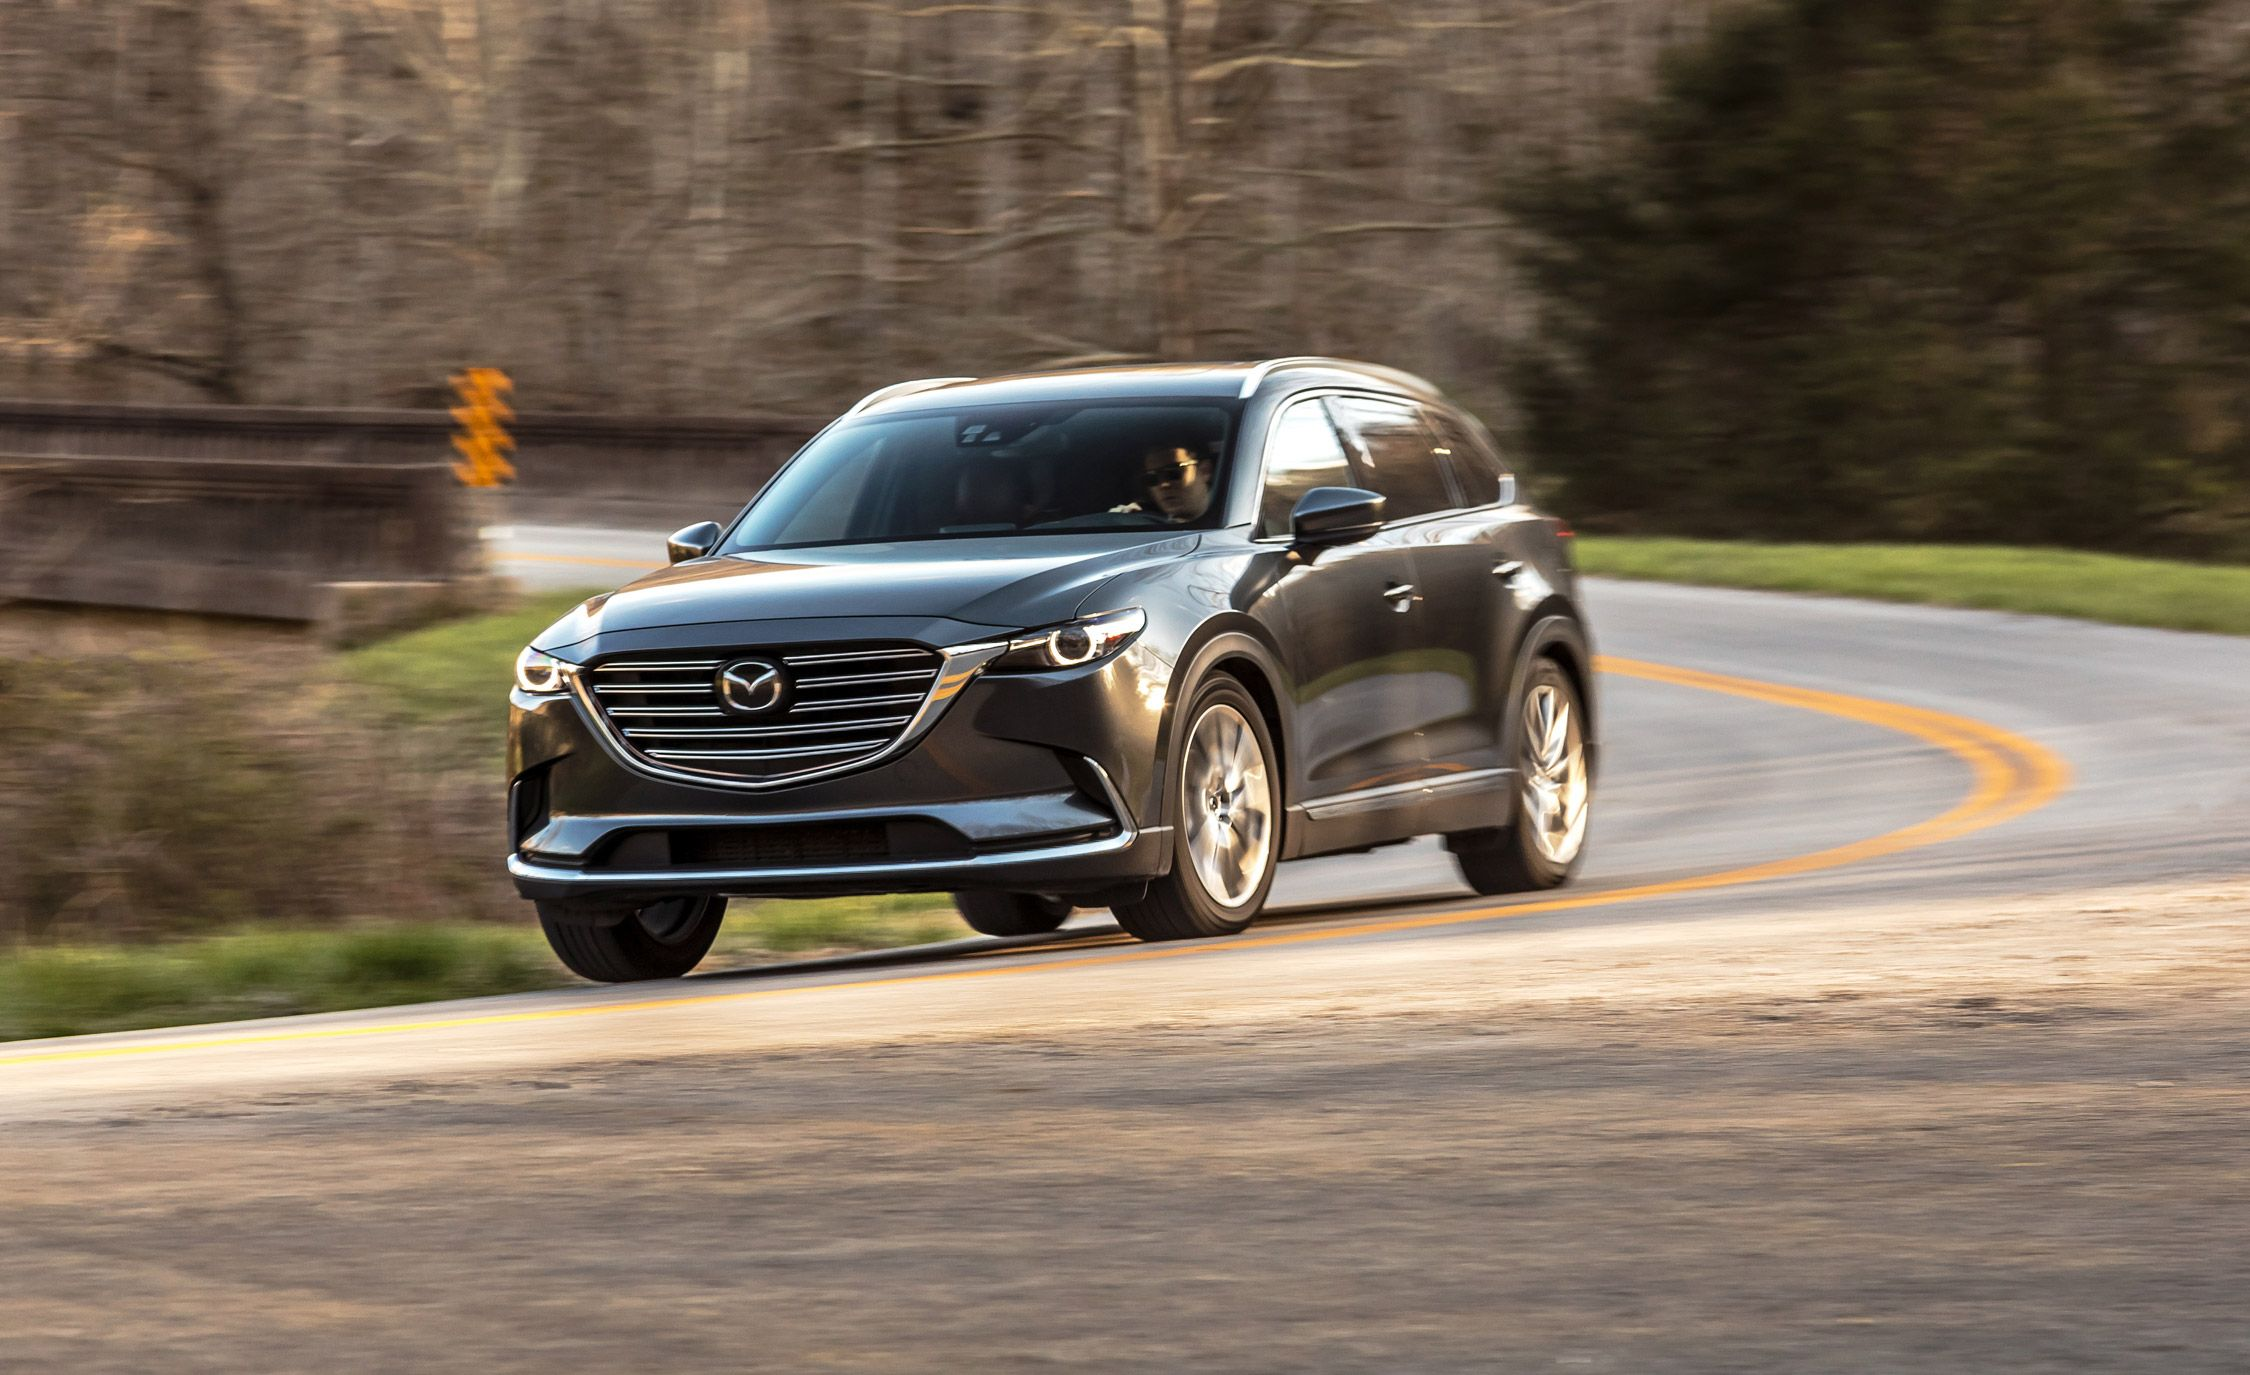 2016 mazda cx 9 long term test wrap up review car and driverimage st car and driver fuel filter replacement  [ 2250 x 1375 Pixel ]